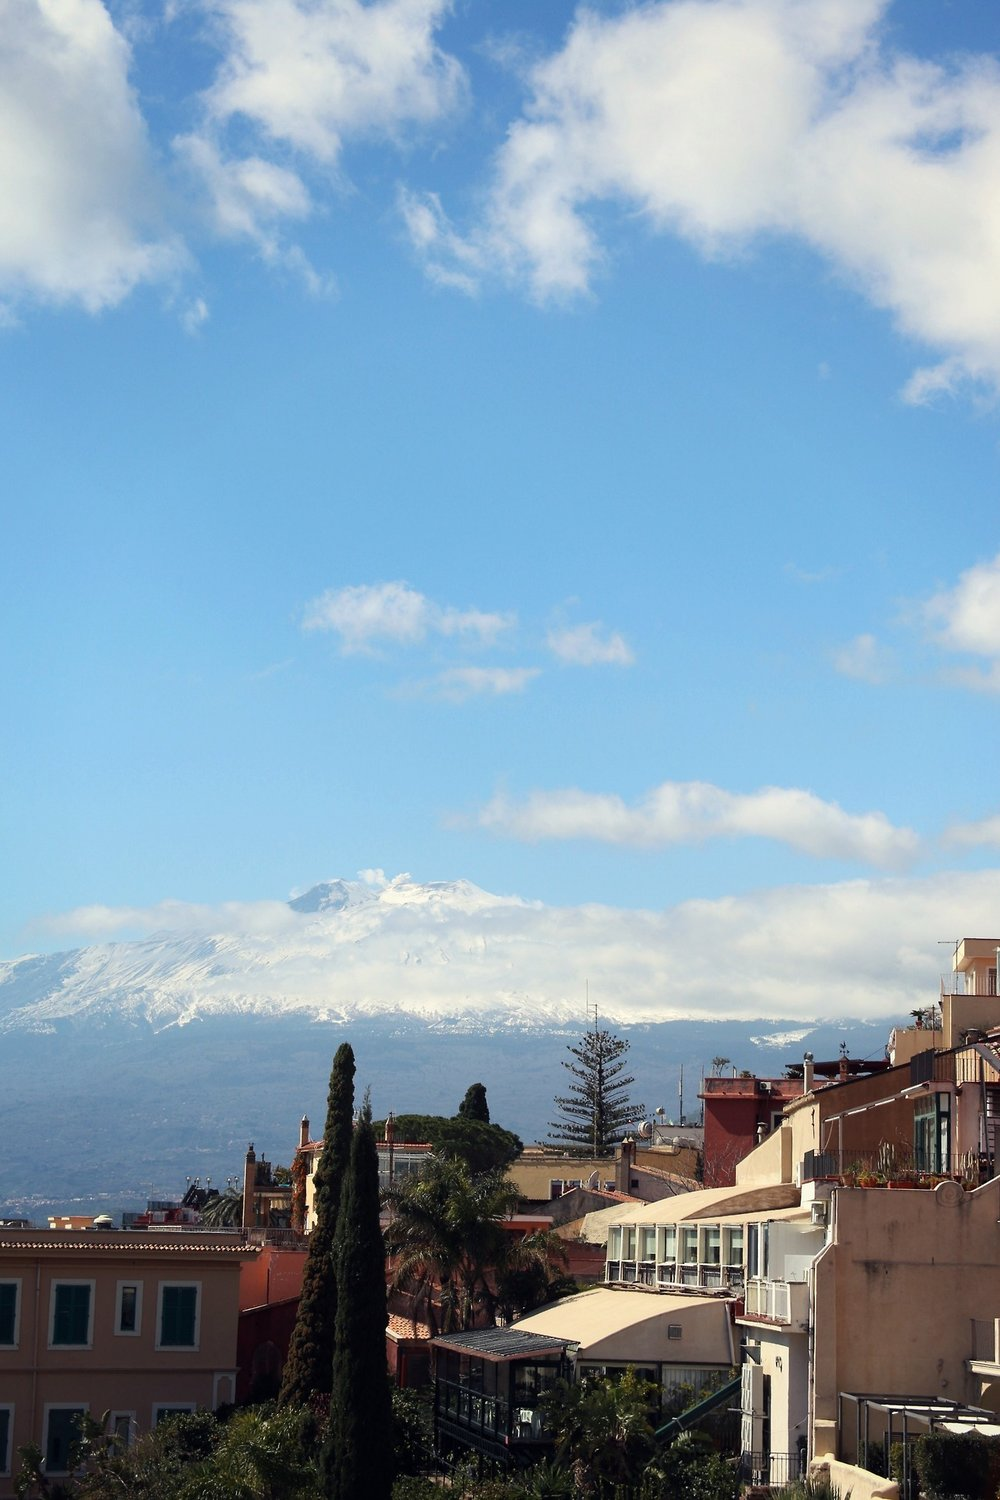 Just like from many places in Sicily, you can see Mount Etna from here!